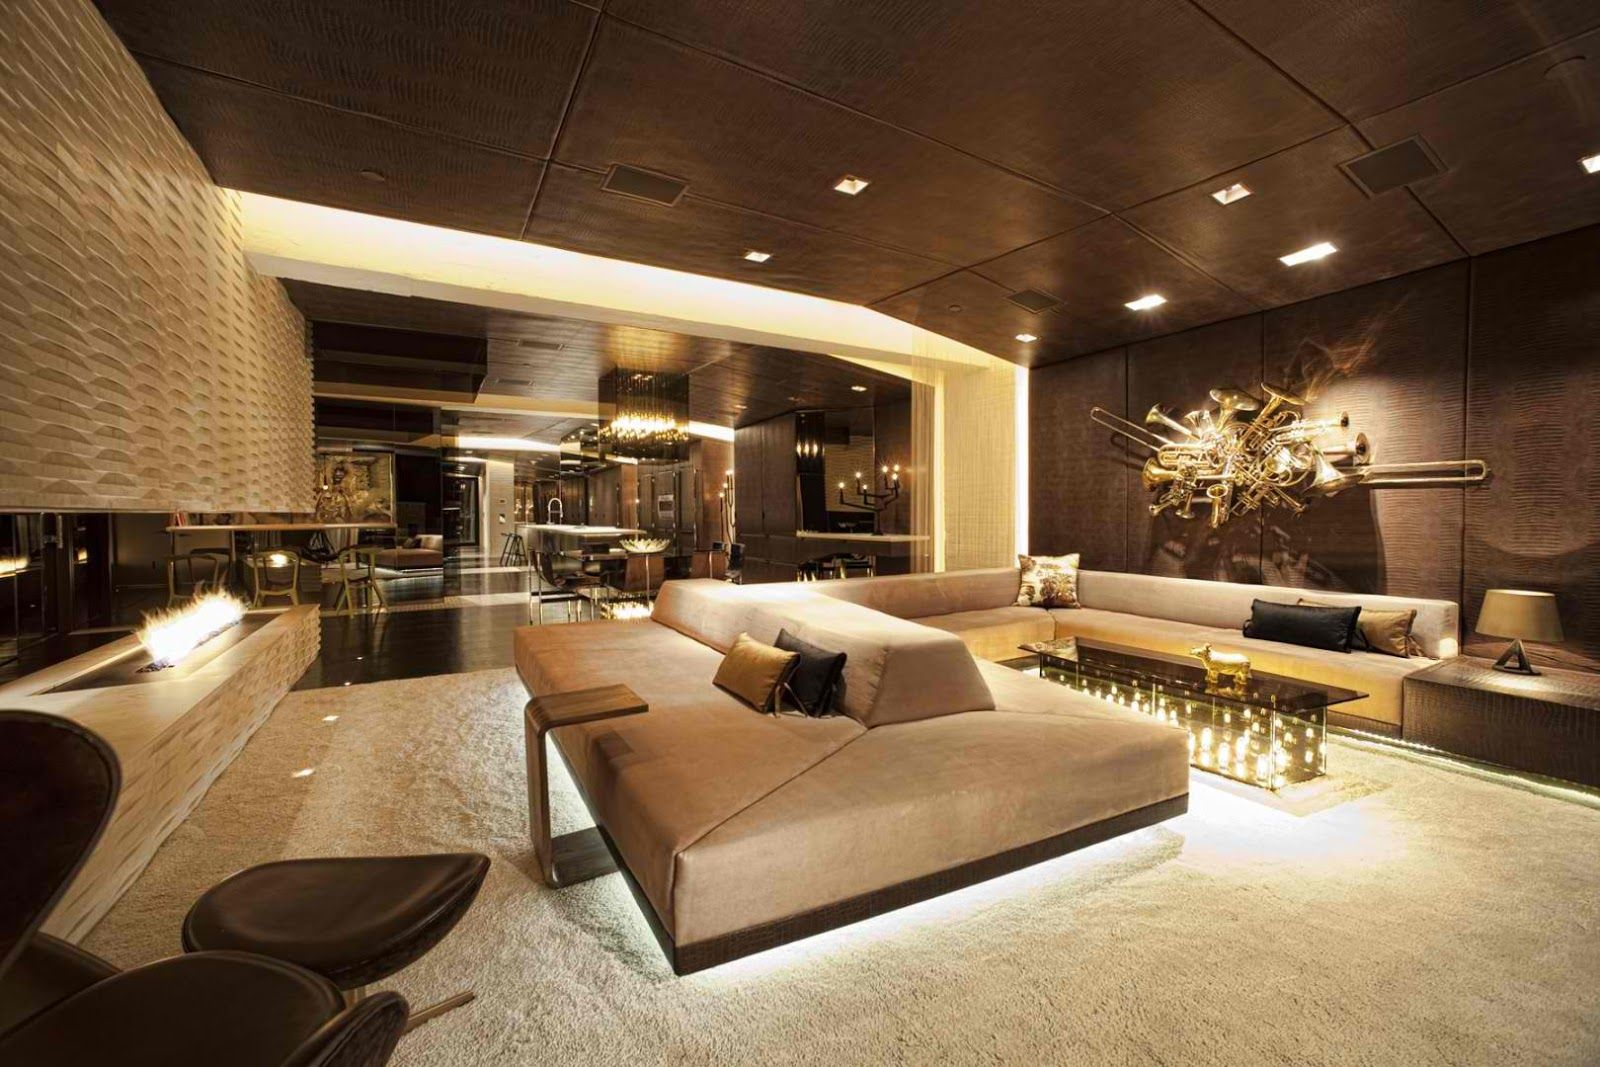 interior image luxury nodern interior design skylab